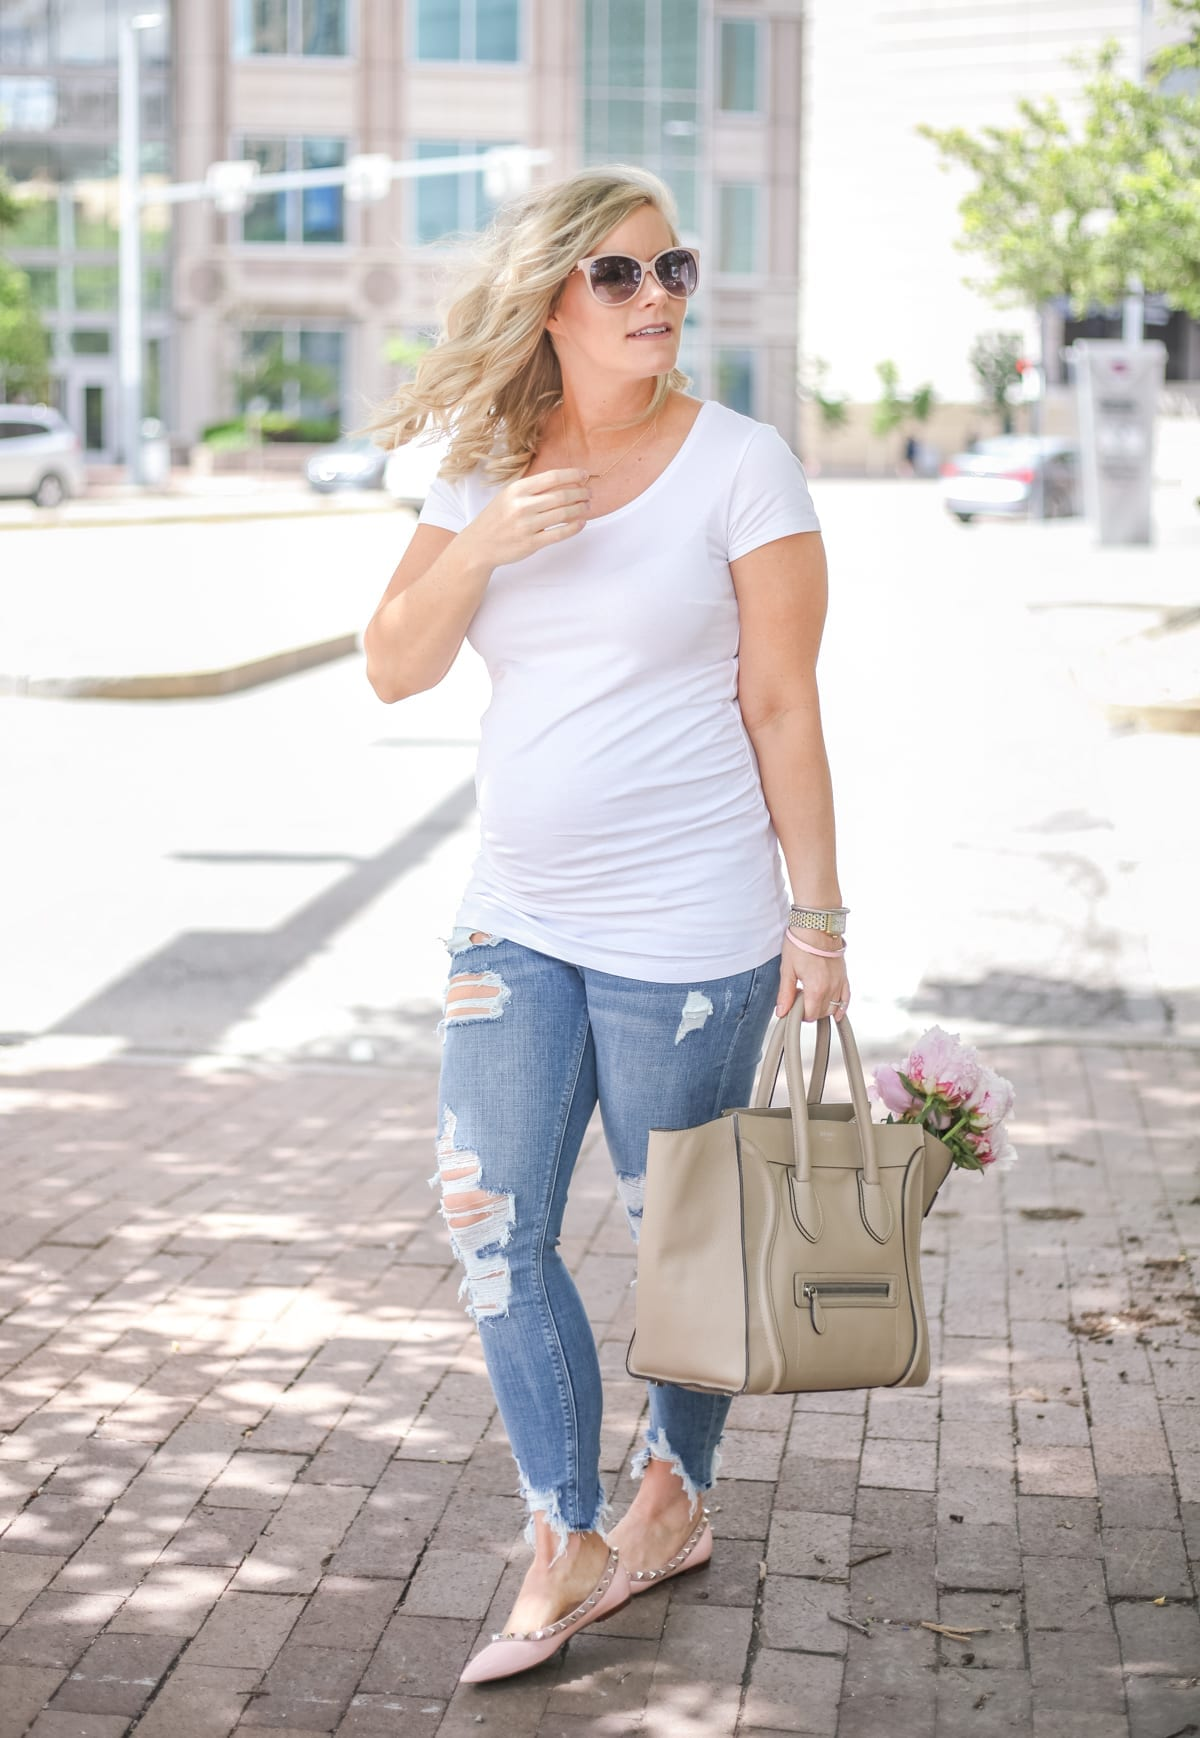 My Favorite Basic Closet Staples to Stock Up on #NSALE